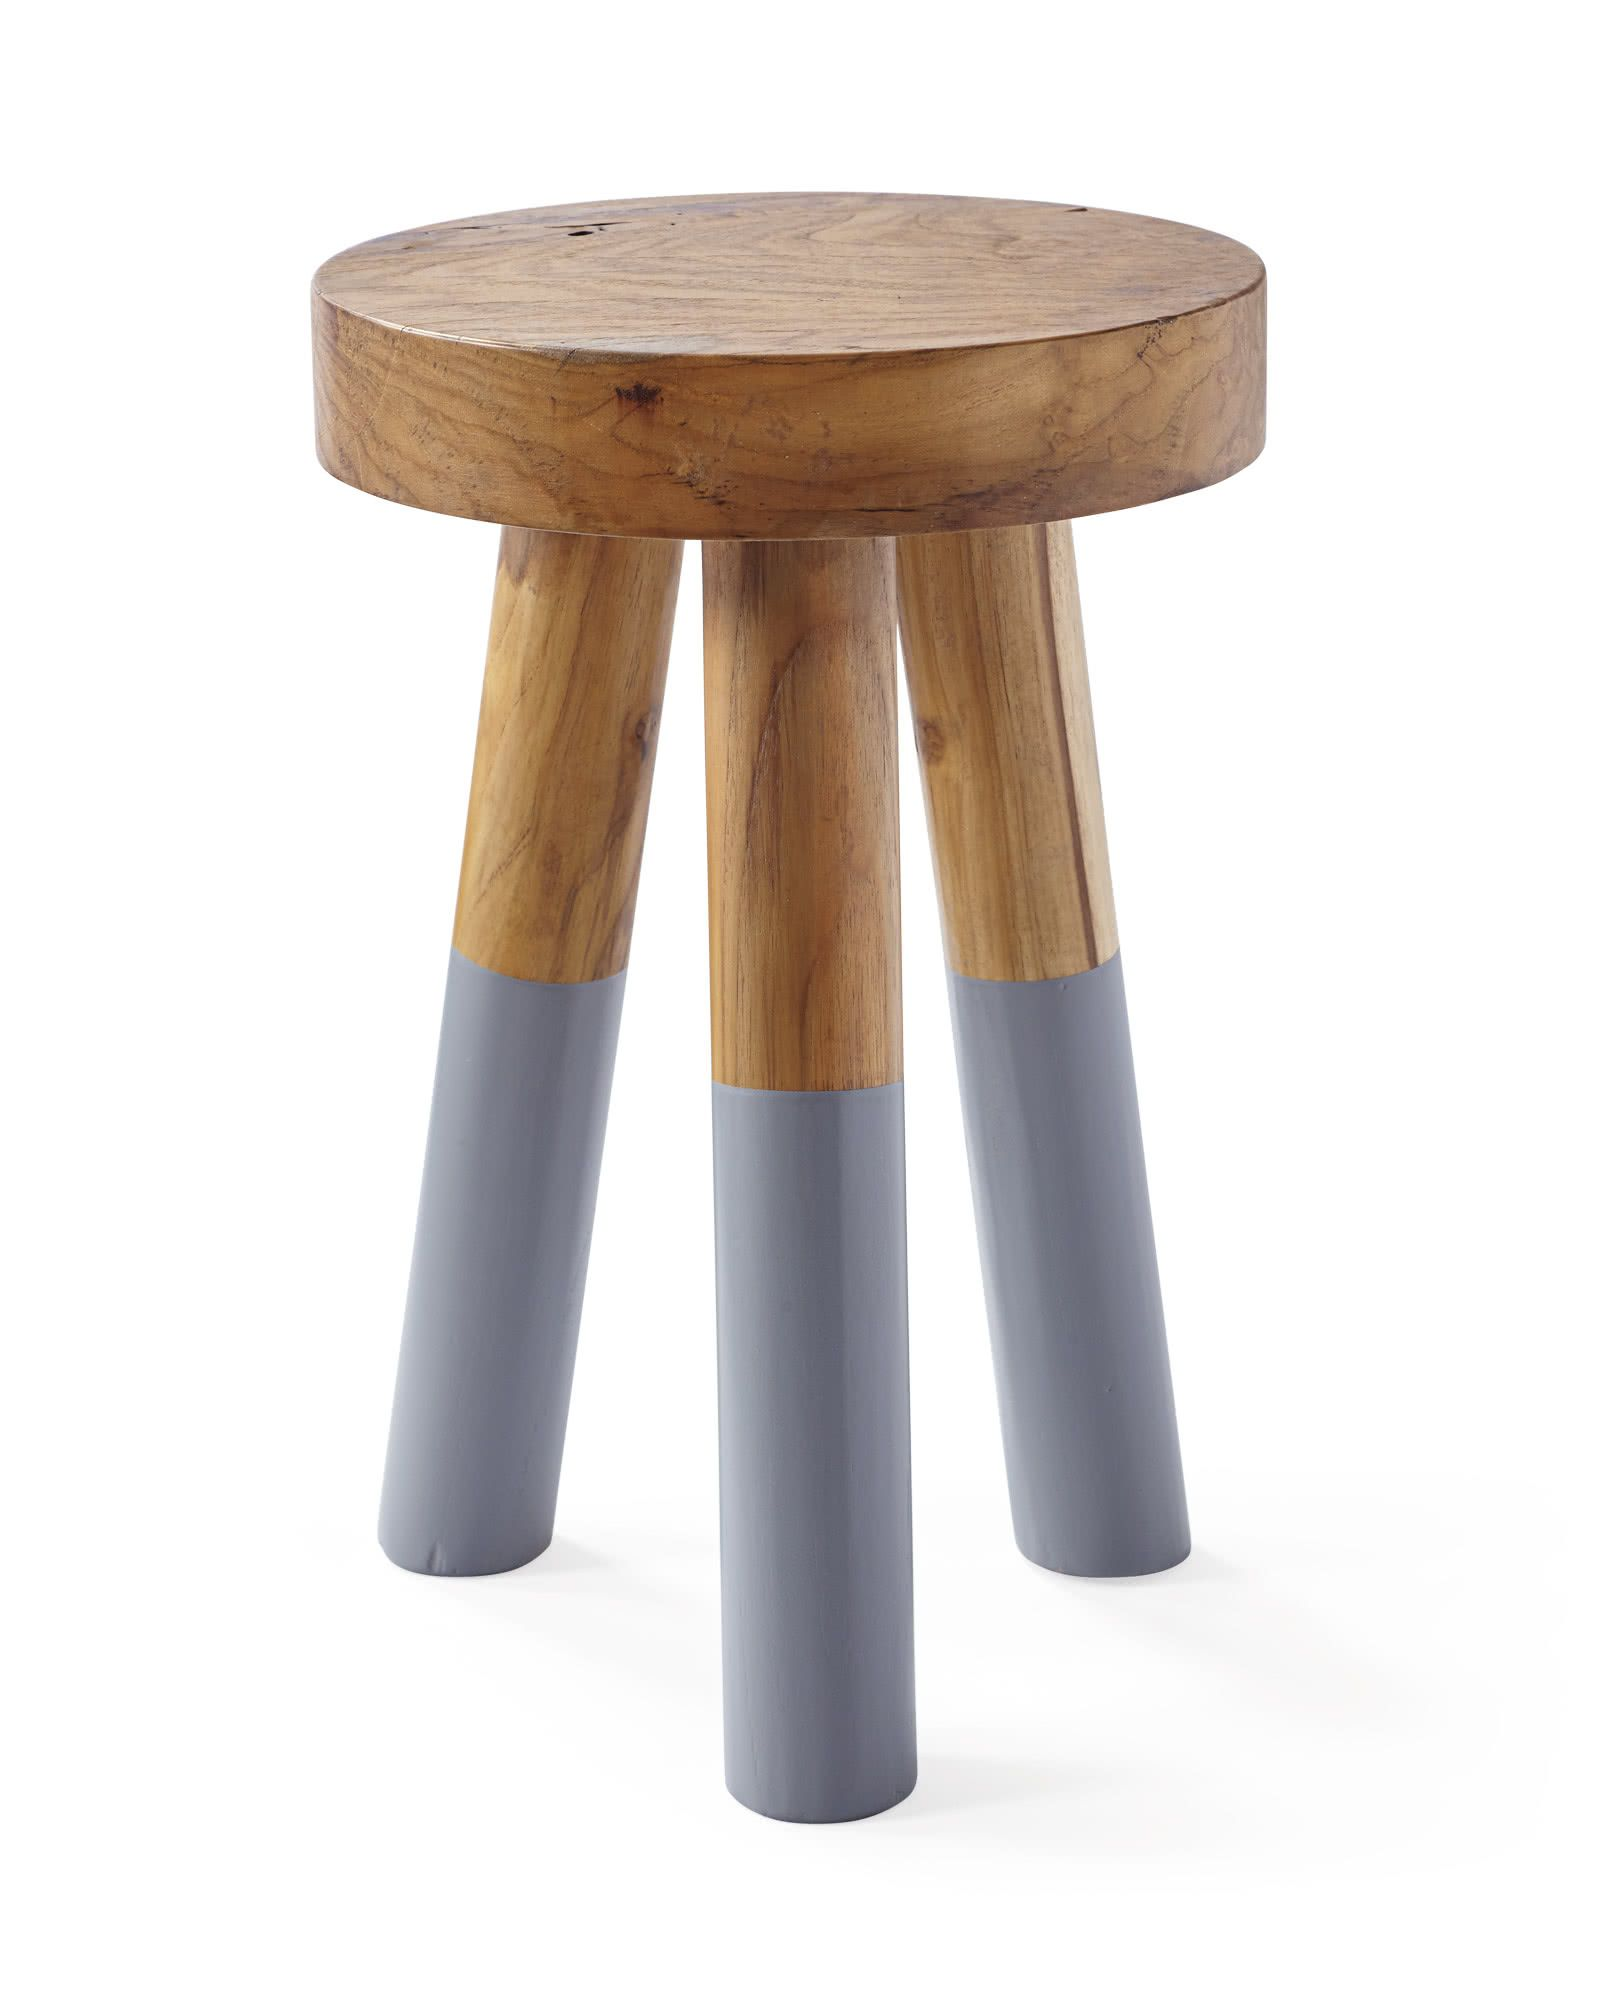 Serena Lily Dip Dyed Stools Glossy Paint Stool Raw Wood